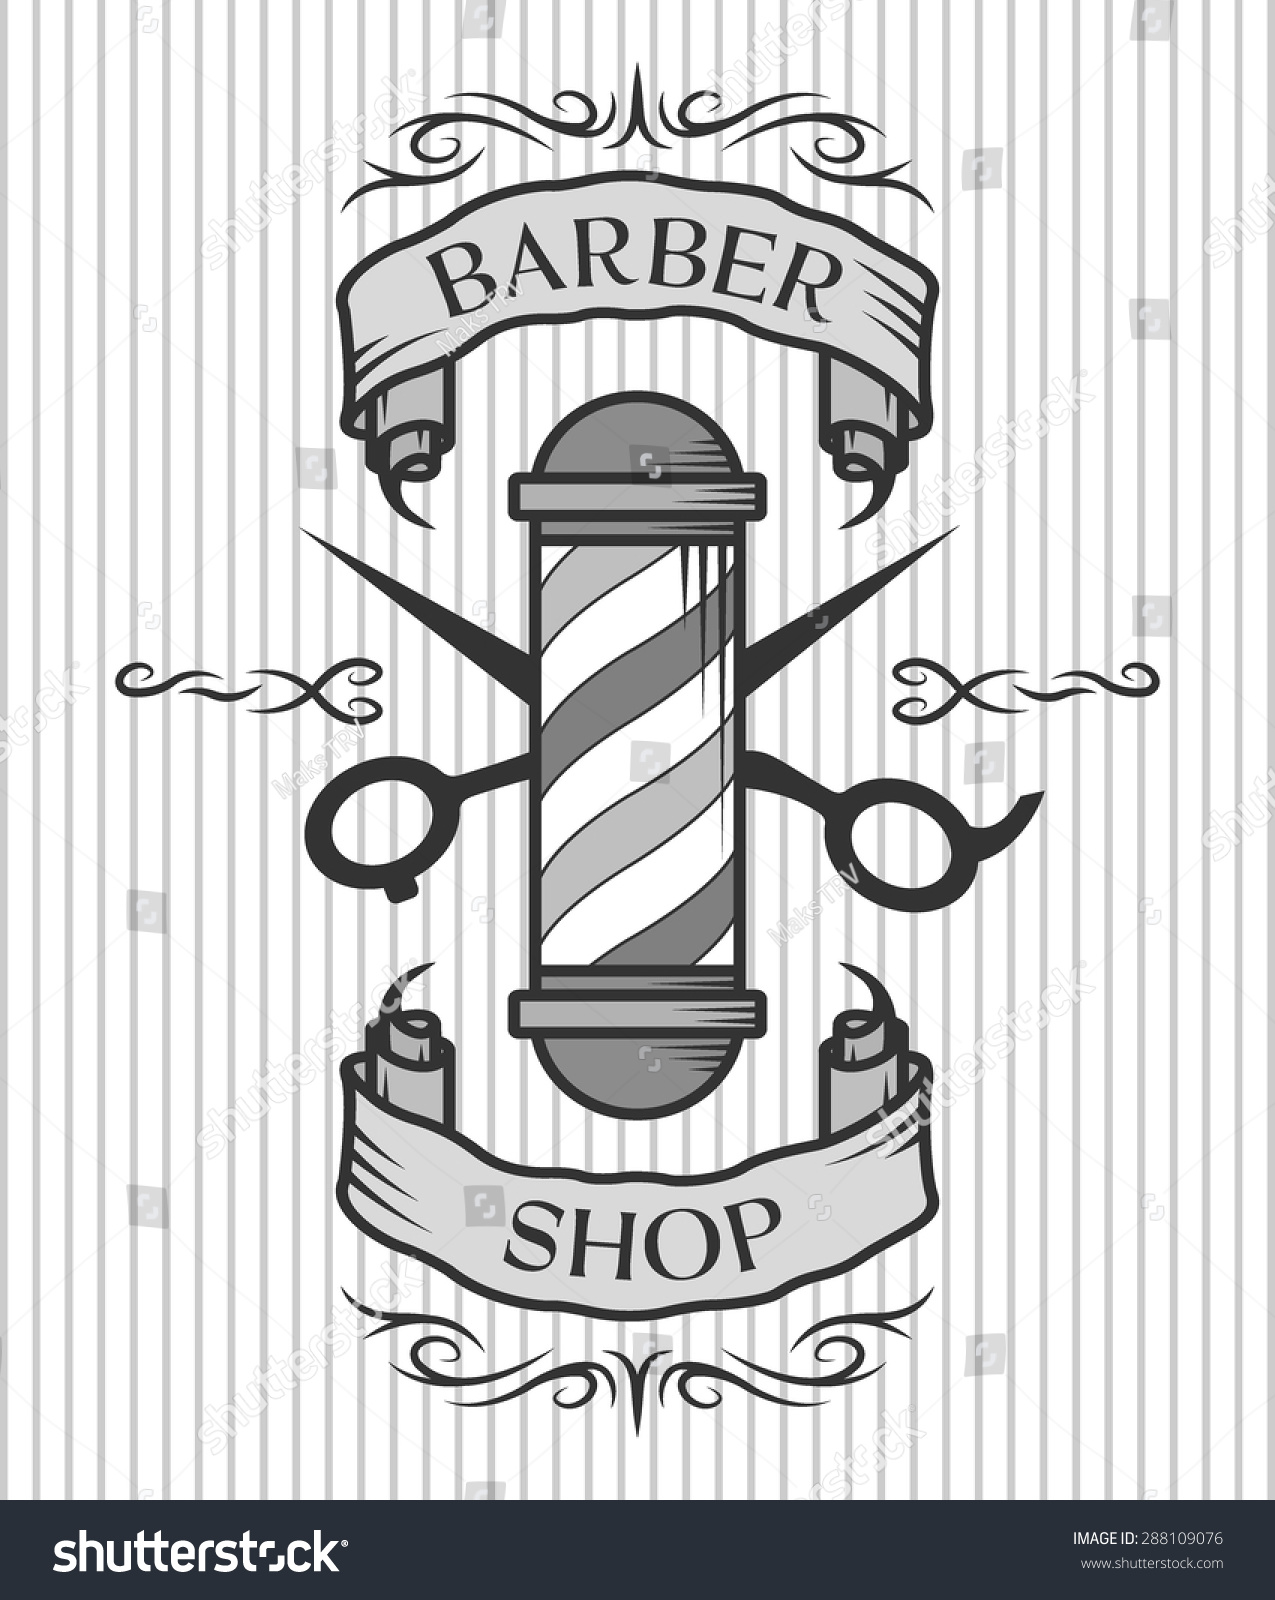 Antique barber shop sign - View Symbol